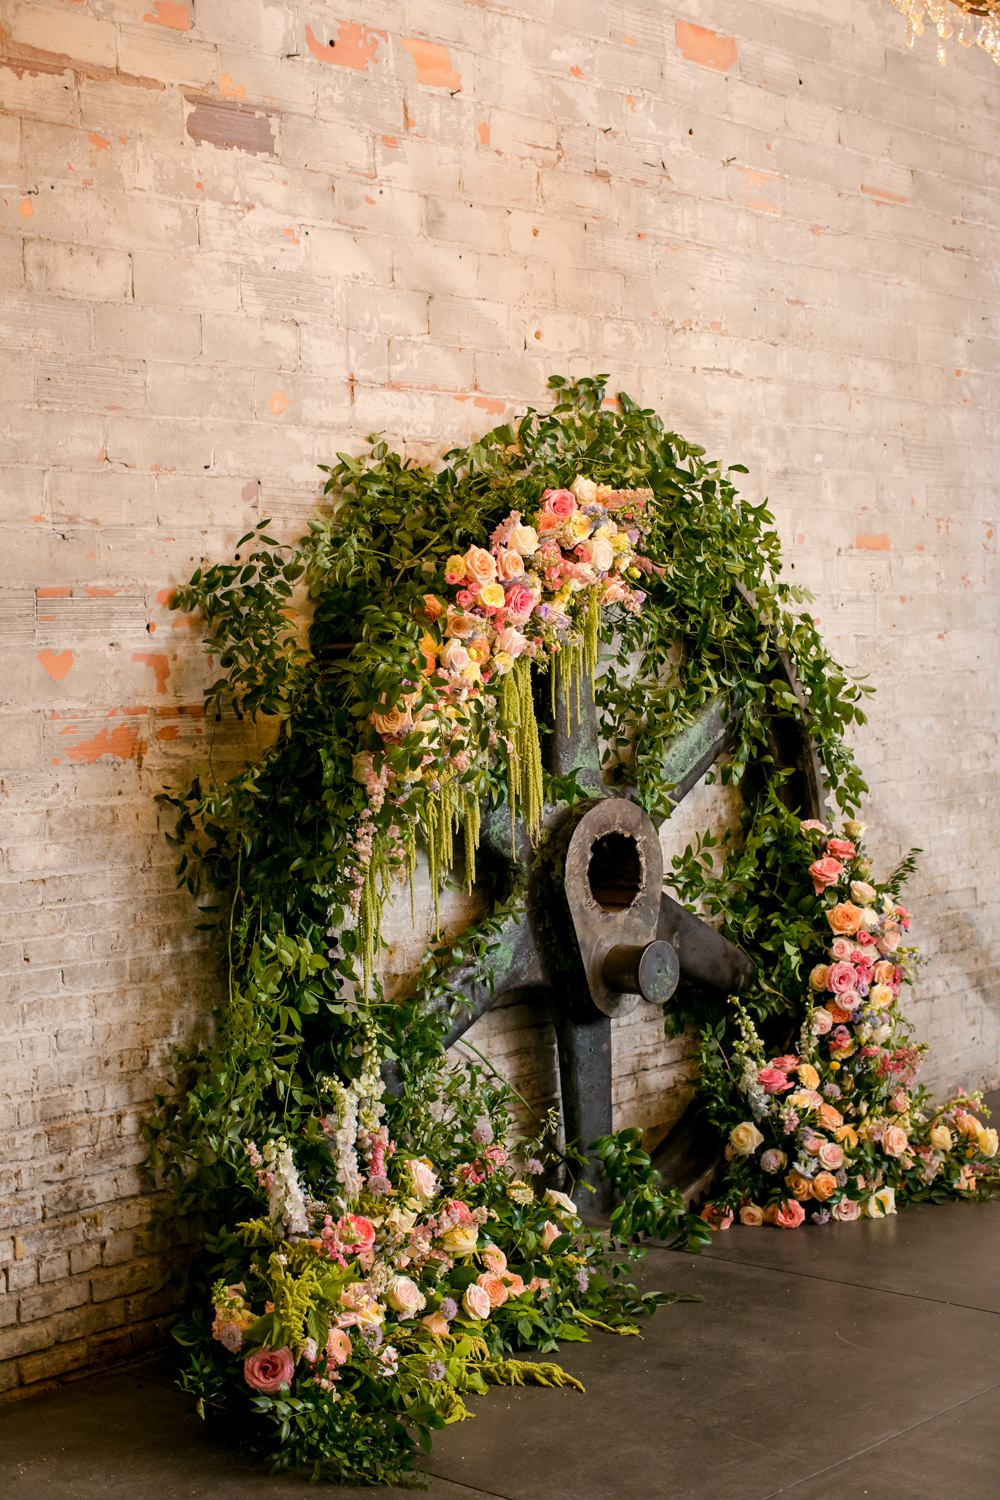 Wooden Wheel Flowers Backdrop Greenery Foliage Peony Rose Floral Minneapolis Wedding Jeannine Marie Photography